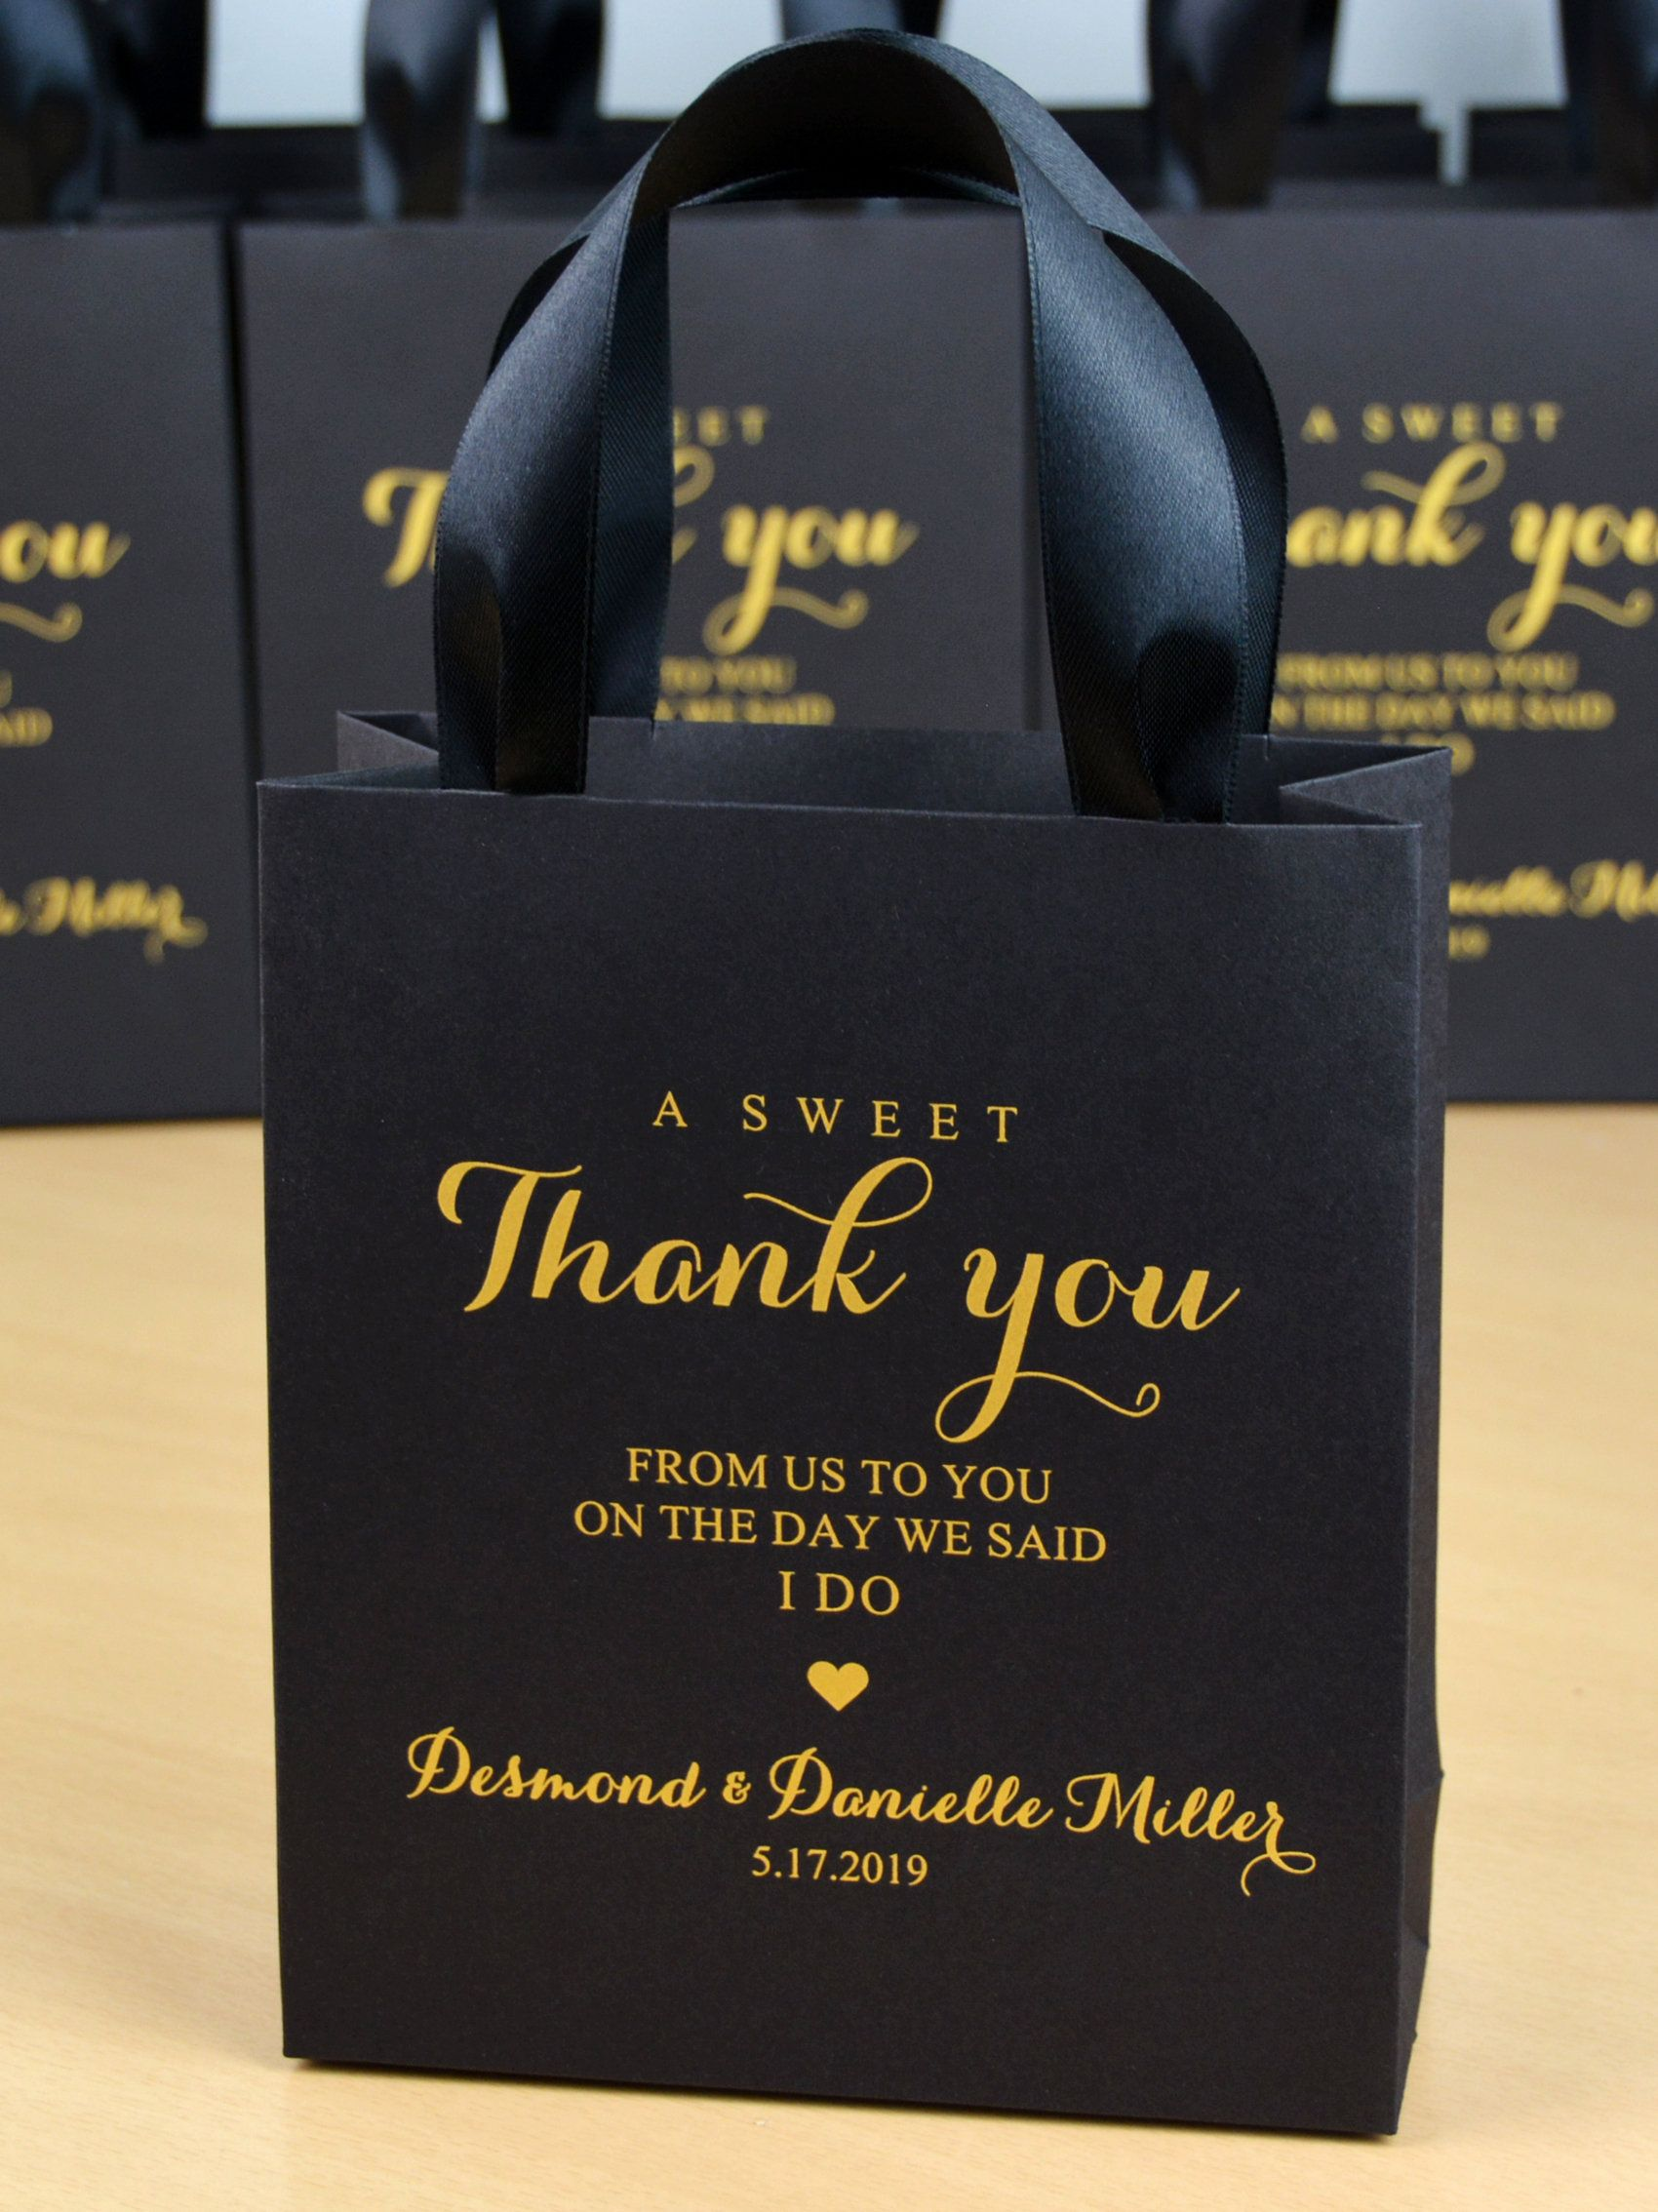 35 Black and Gold Wedding Favor Bags with satin ribbon handles & custom names, Elegant Personalized Wedding Party gift bags for guests #personalizedwedding